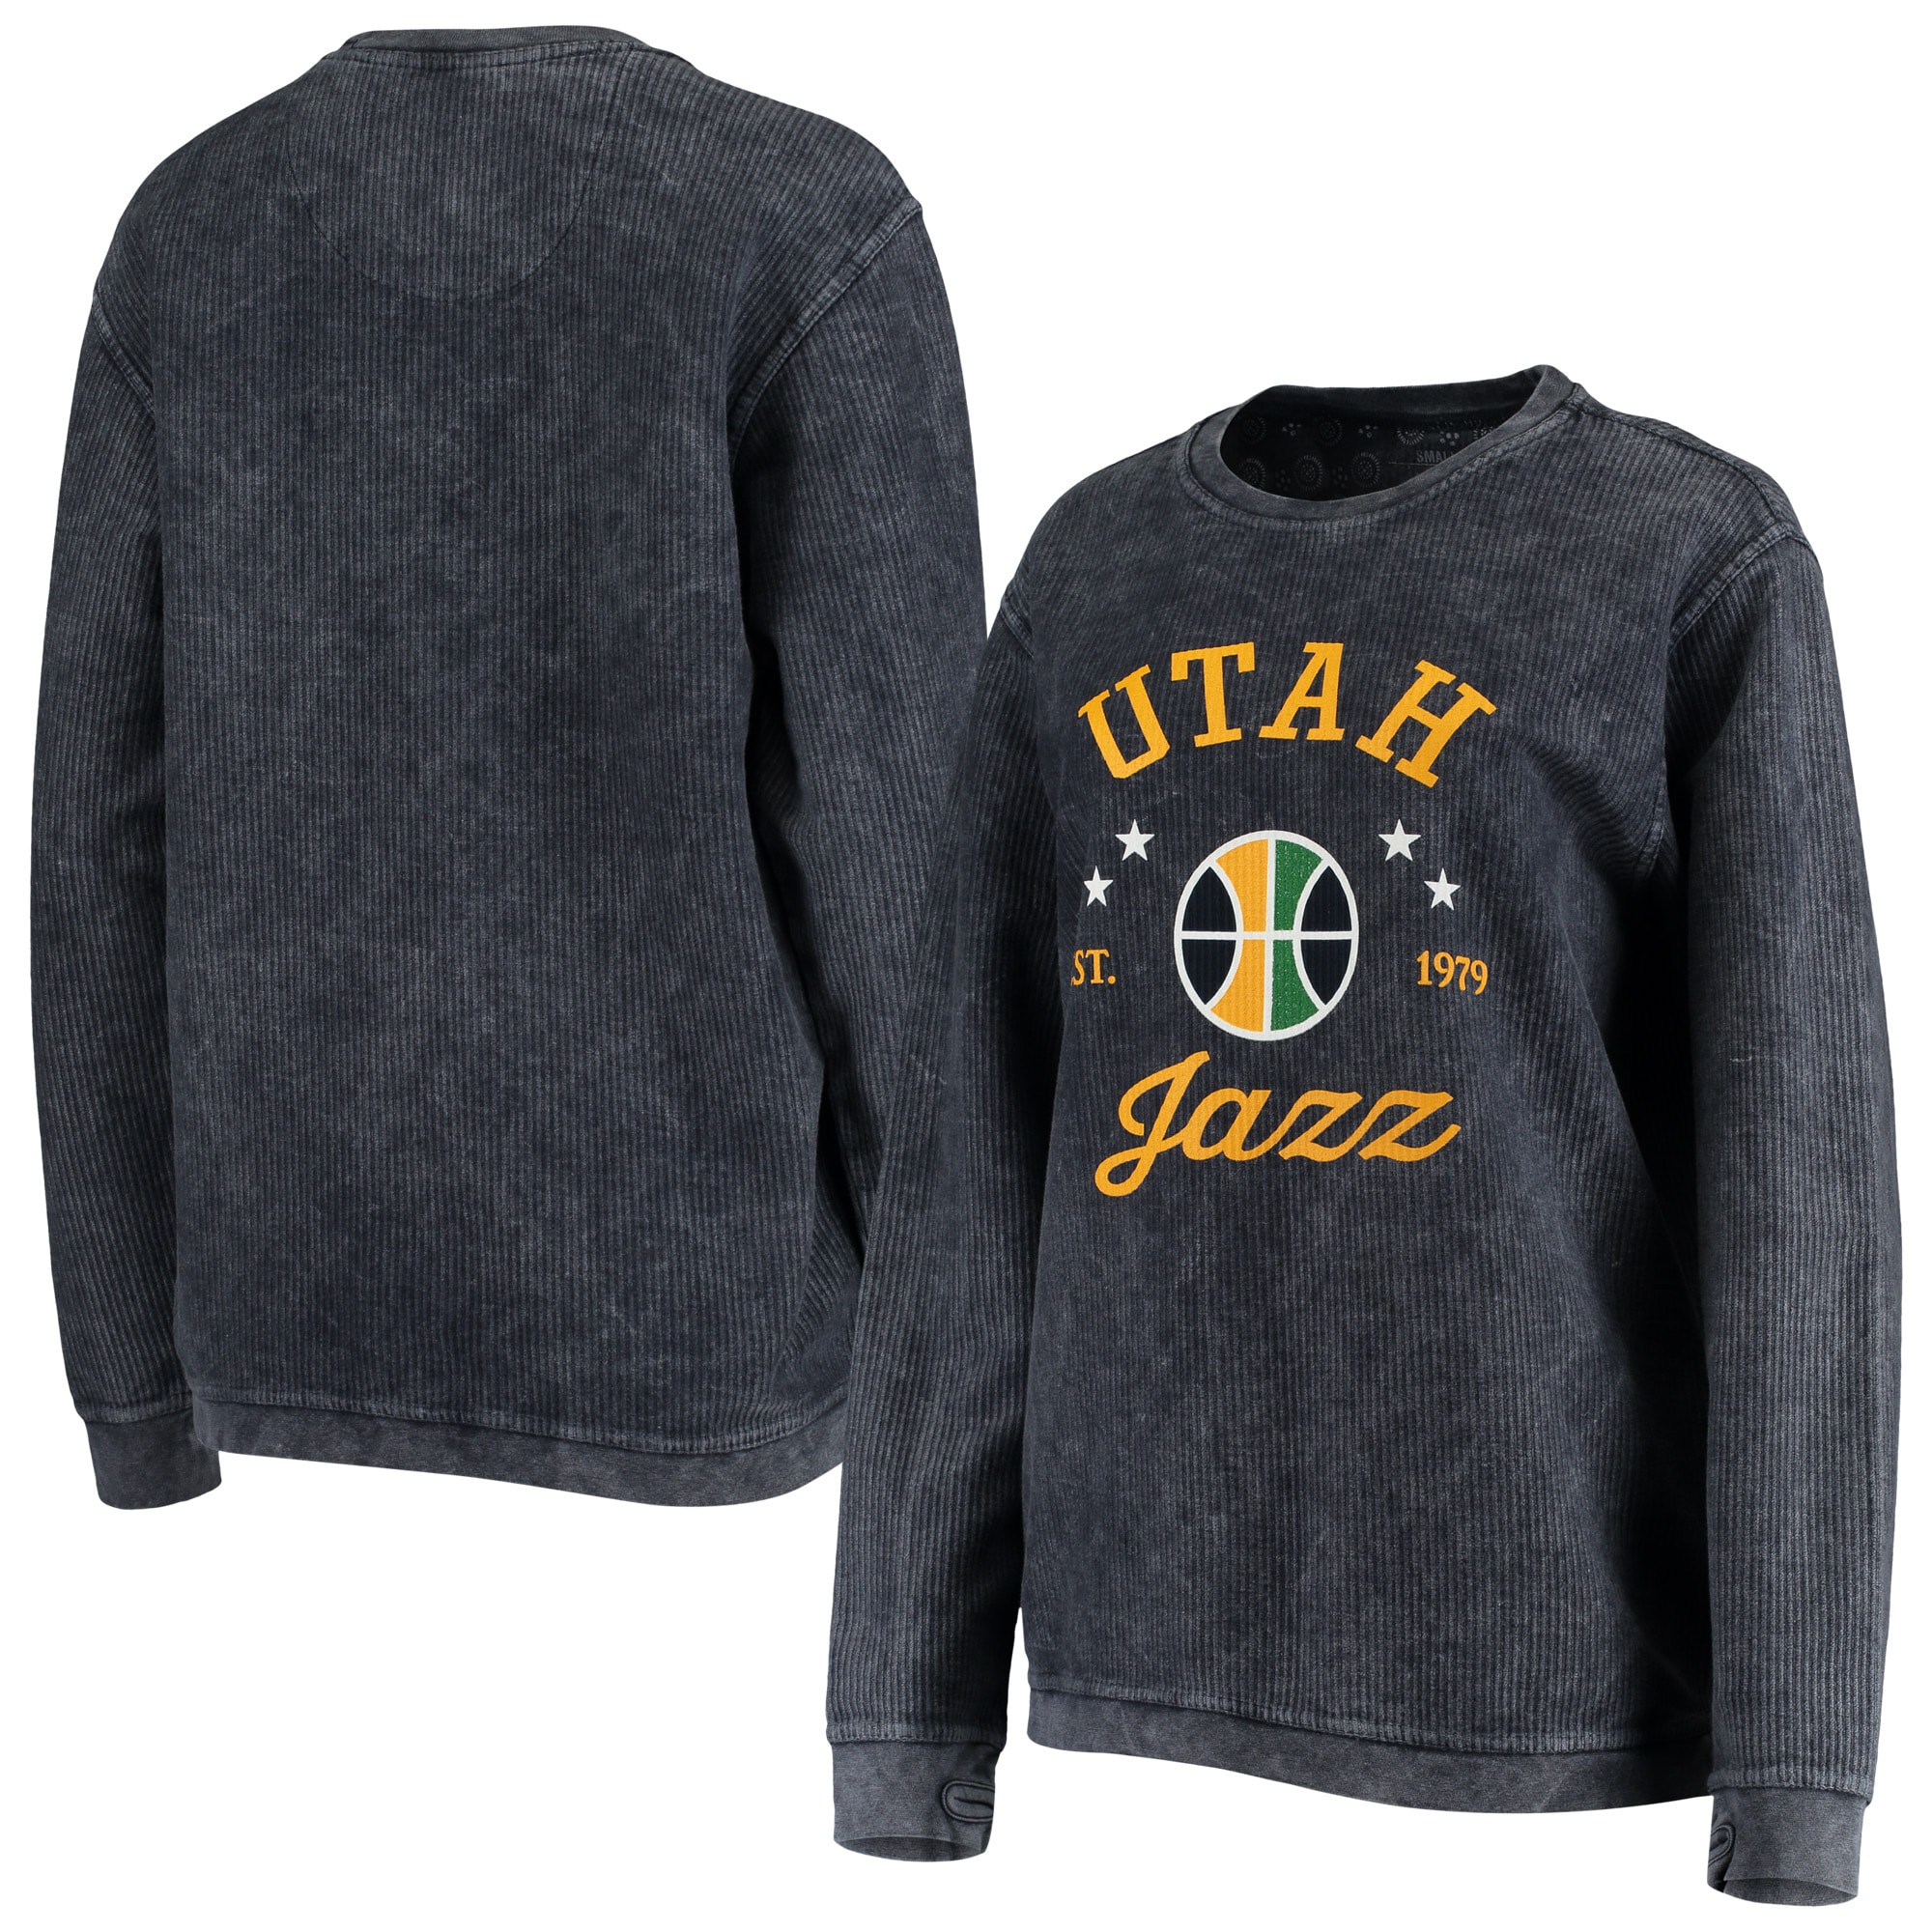 Utah Jazz G-III Sports by Carl Banks Women's Slouchy Comfy Cord Crewneck Pullover Sweatshirt - Navy